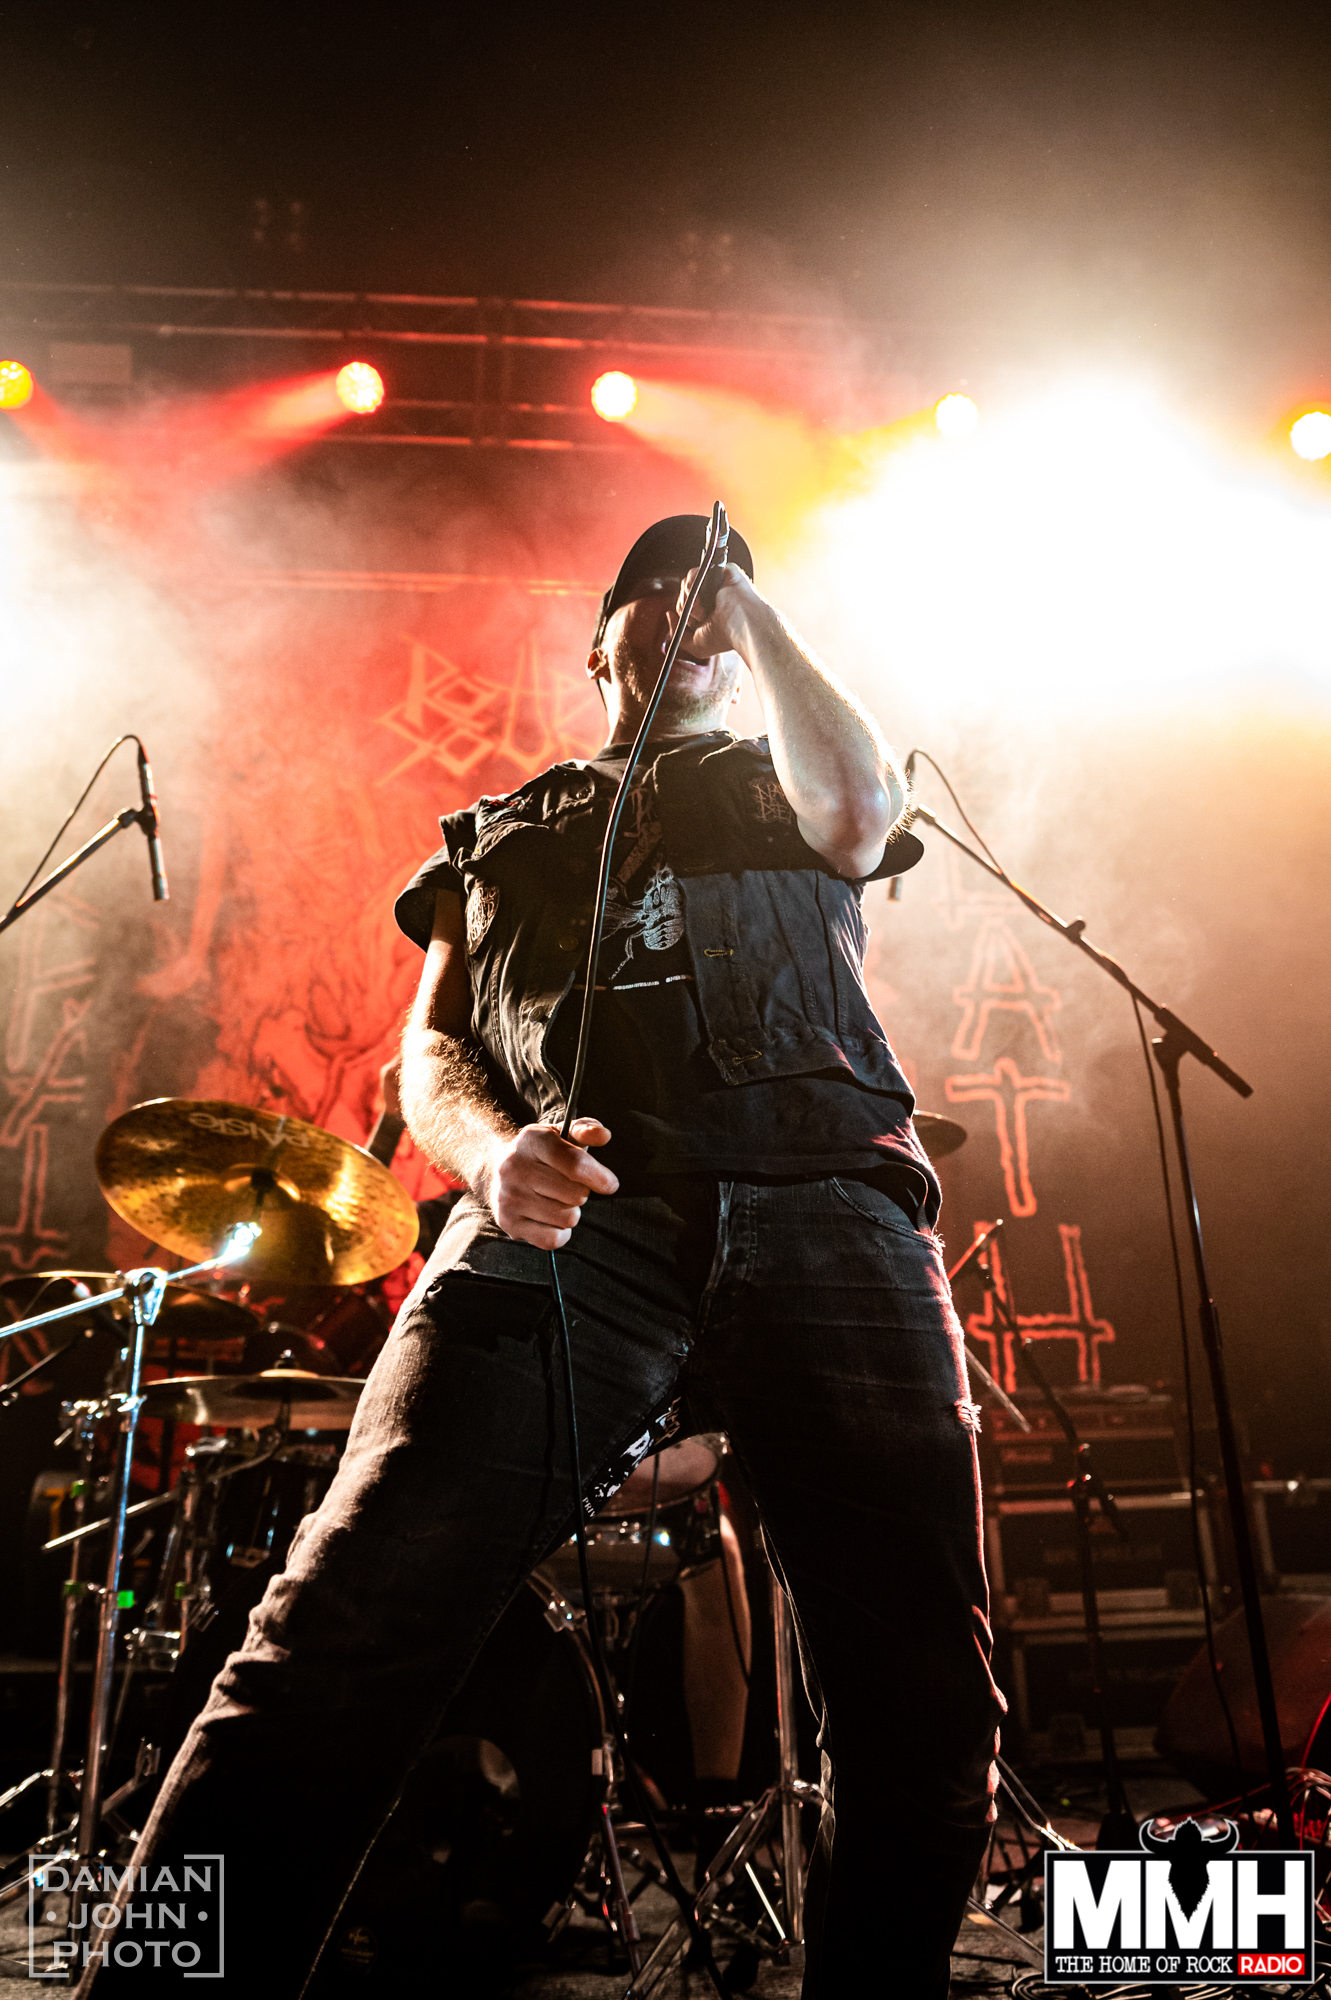 finnish death metal band rotten sound performing at the O2 Institute birmingham